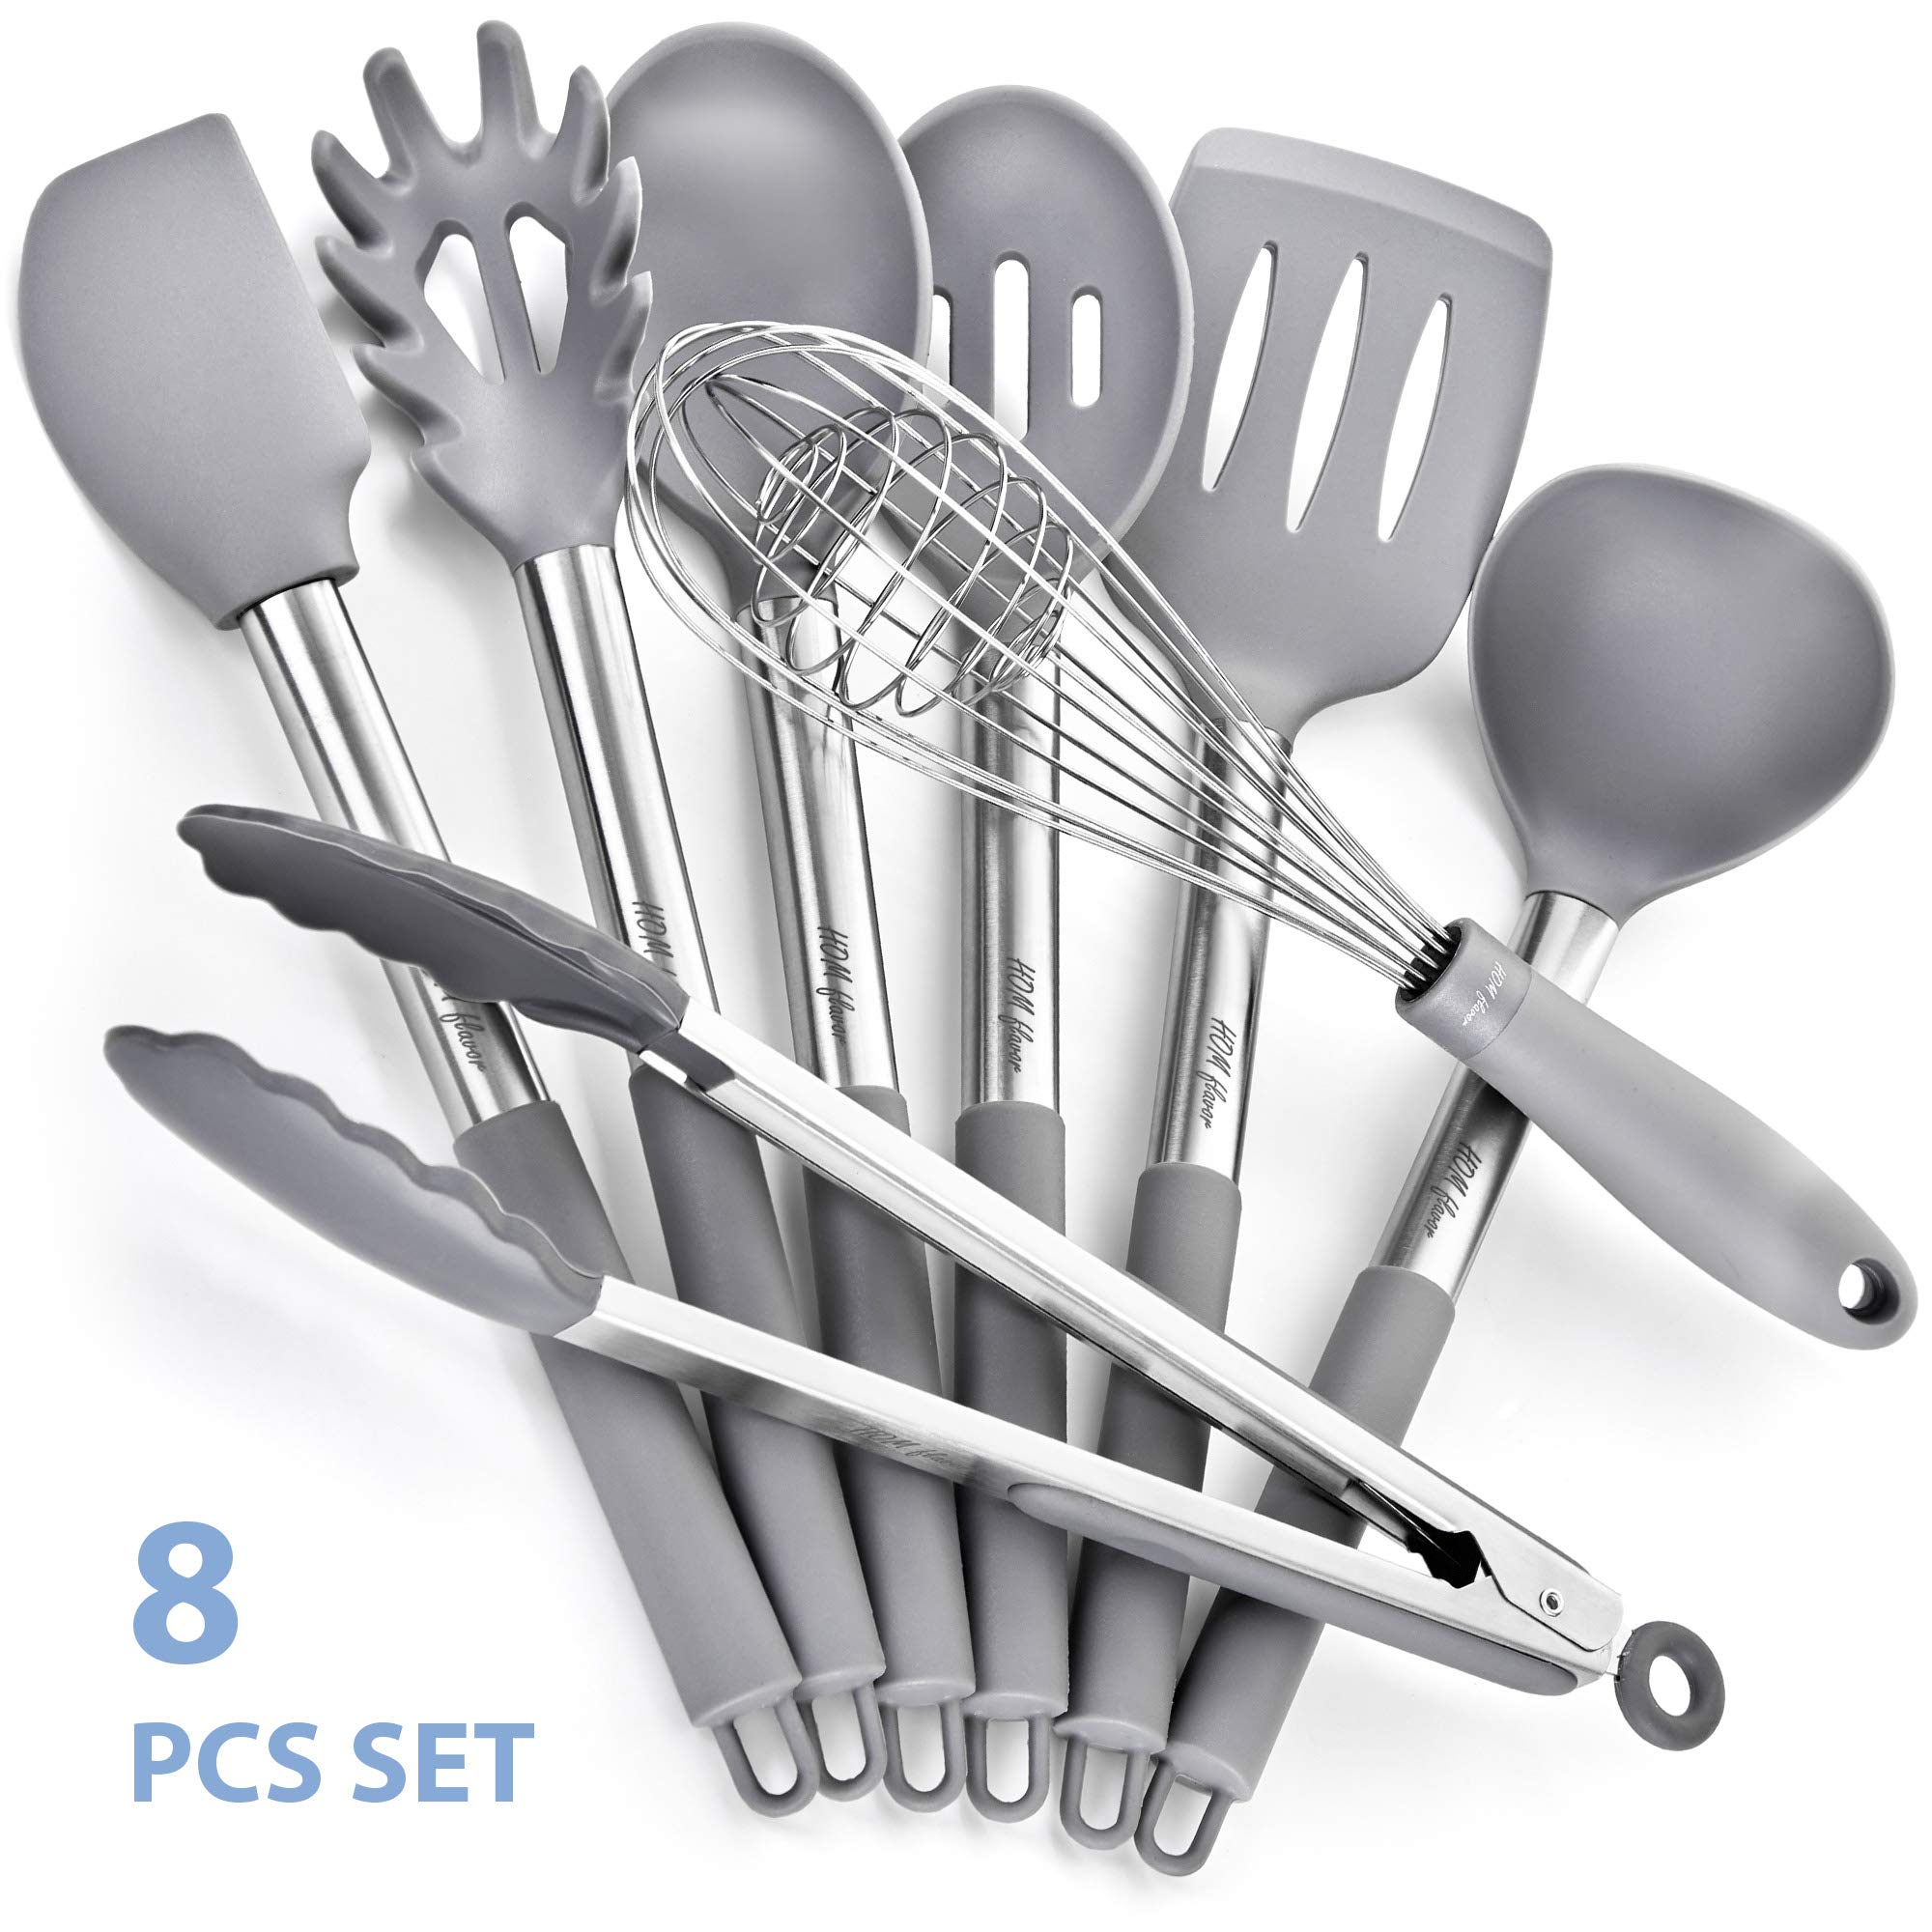 8 Silicone Stainless Steel Nonstick Kitchen Utensil set Silicone Stainless Steel Cooking Utensils set Non-Scratch Cooking Spatulas Kitchen Tool Set and Gadgets